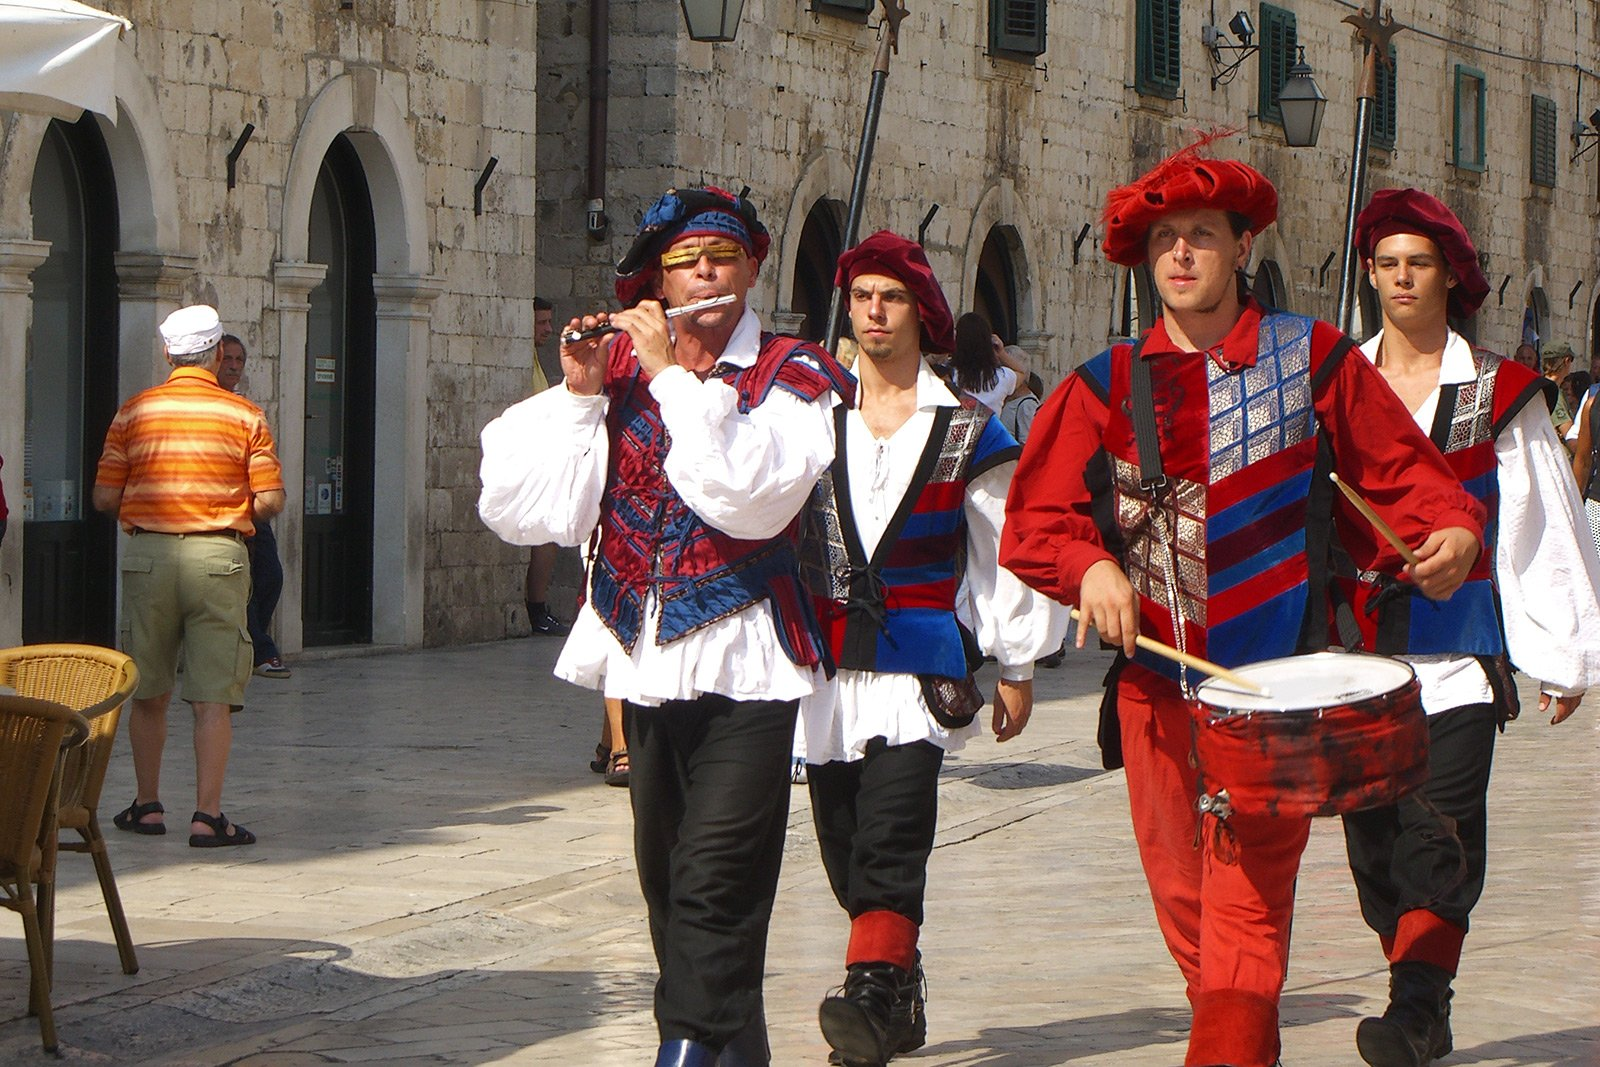 How to see the city guards of Dubrovnik in Dubrovnik